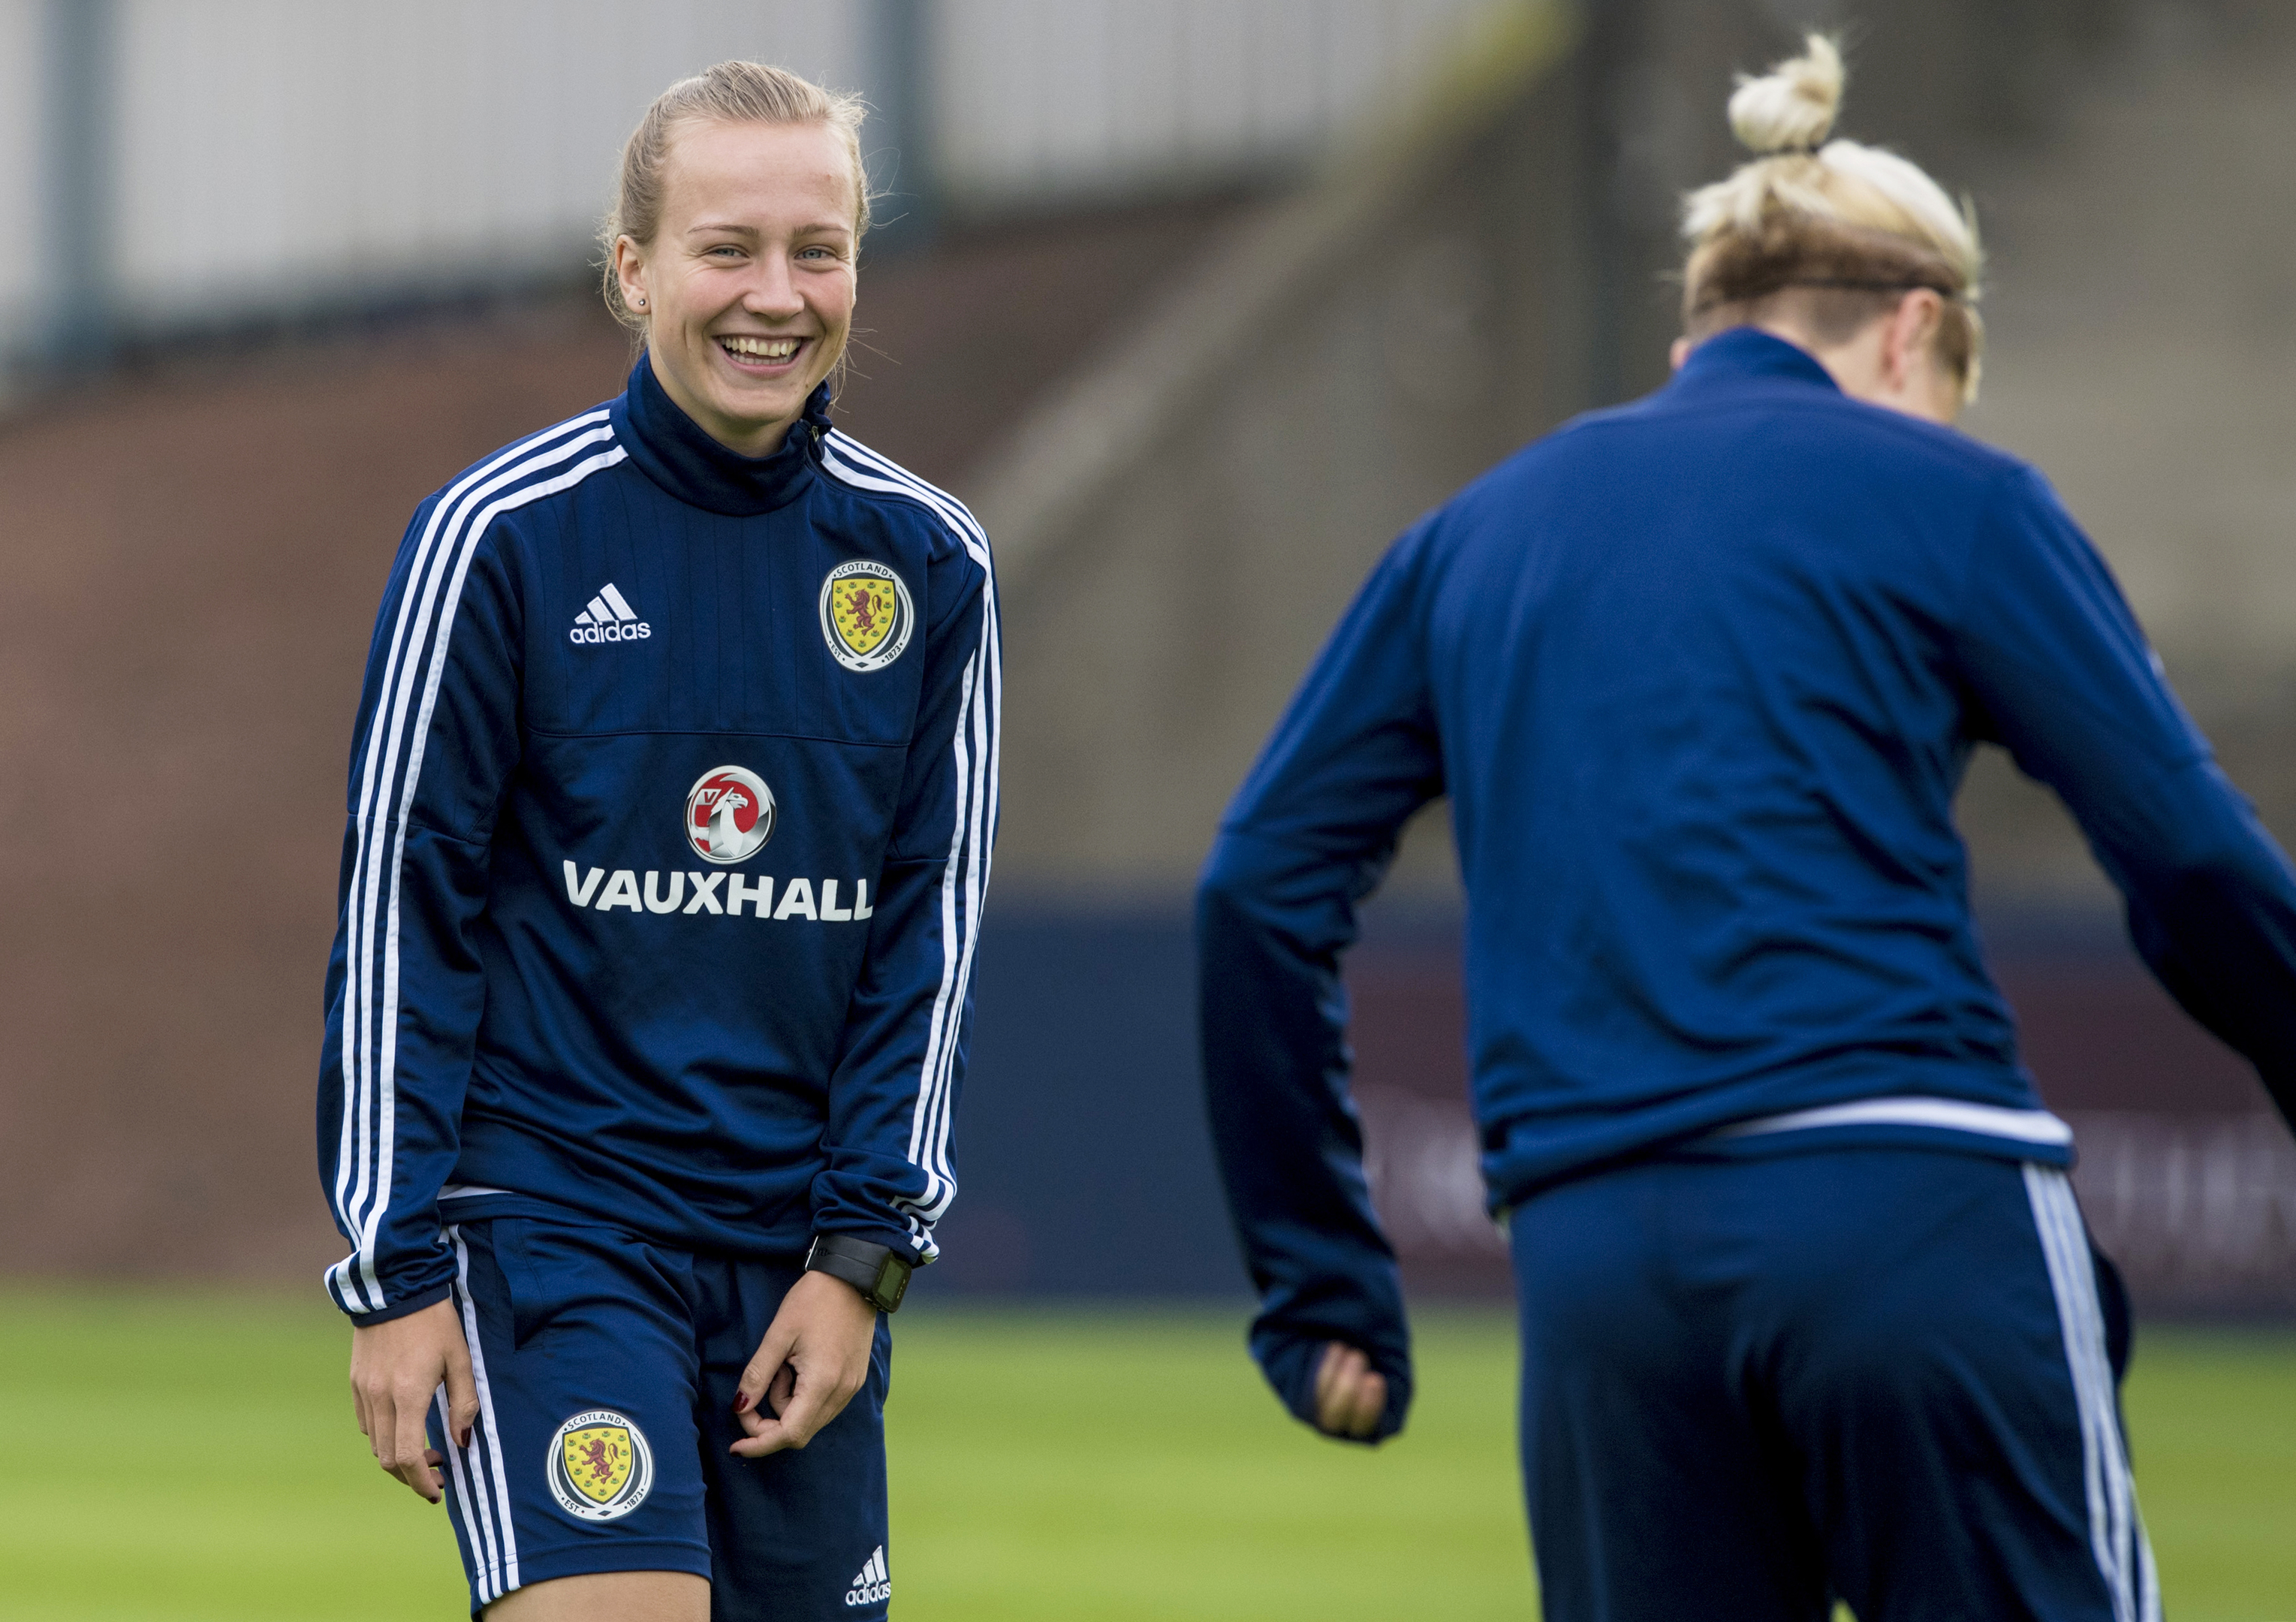 Scotland's Rachel McLauchlan, aims to inspire youngsters as a role model.